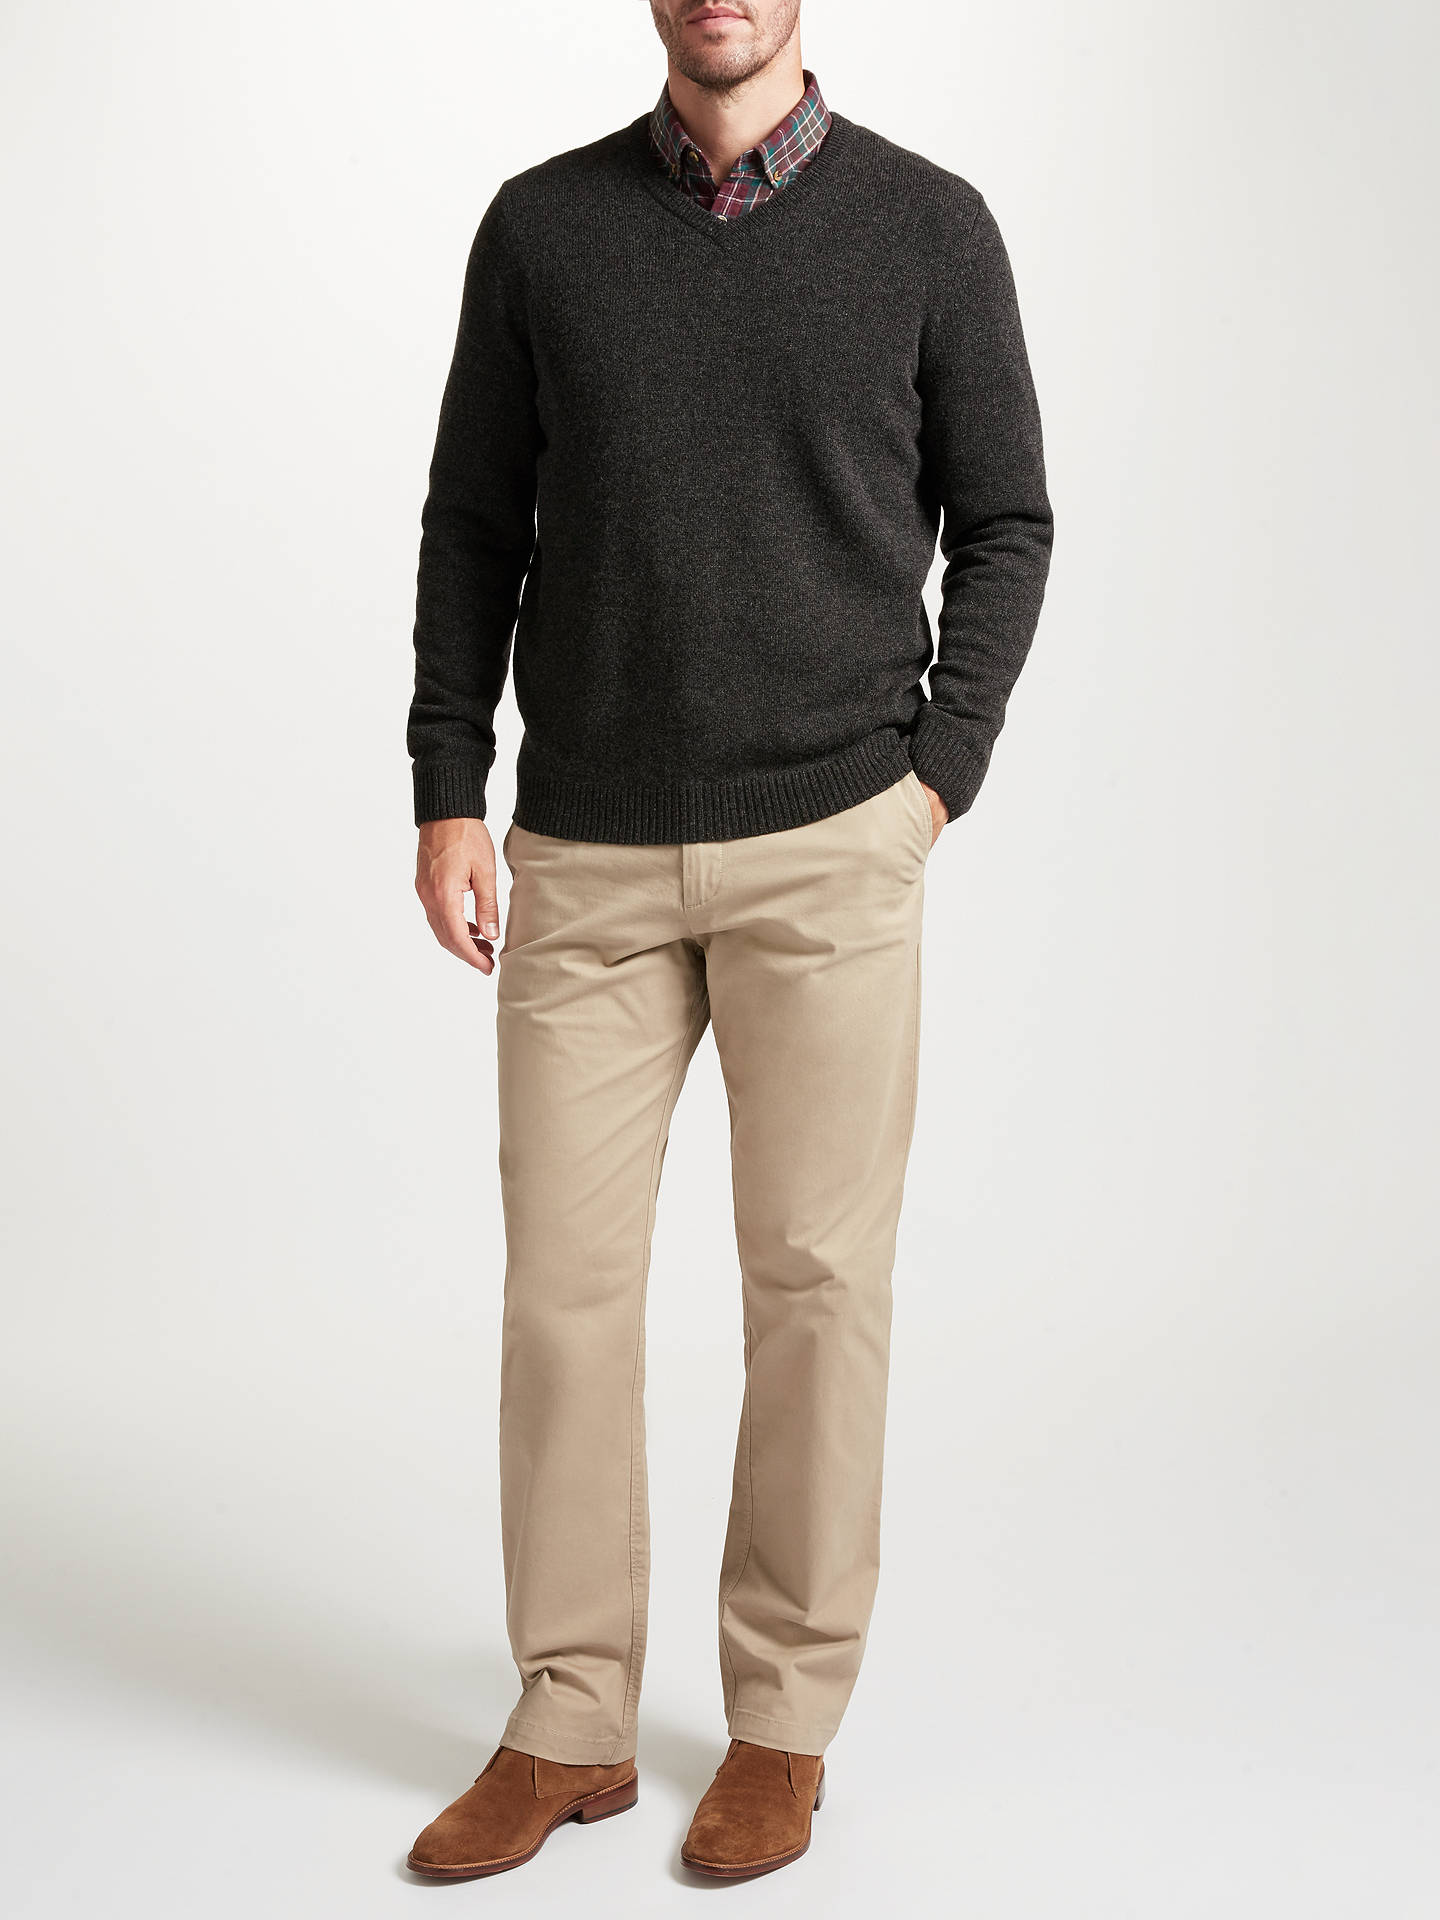 BuyJohn Lewis & Partners Merino Cashmere V-Neck Jumper, Grey, S Online at johnlewis.com